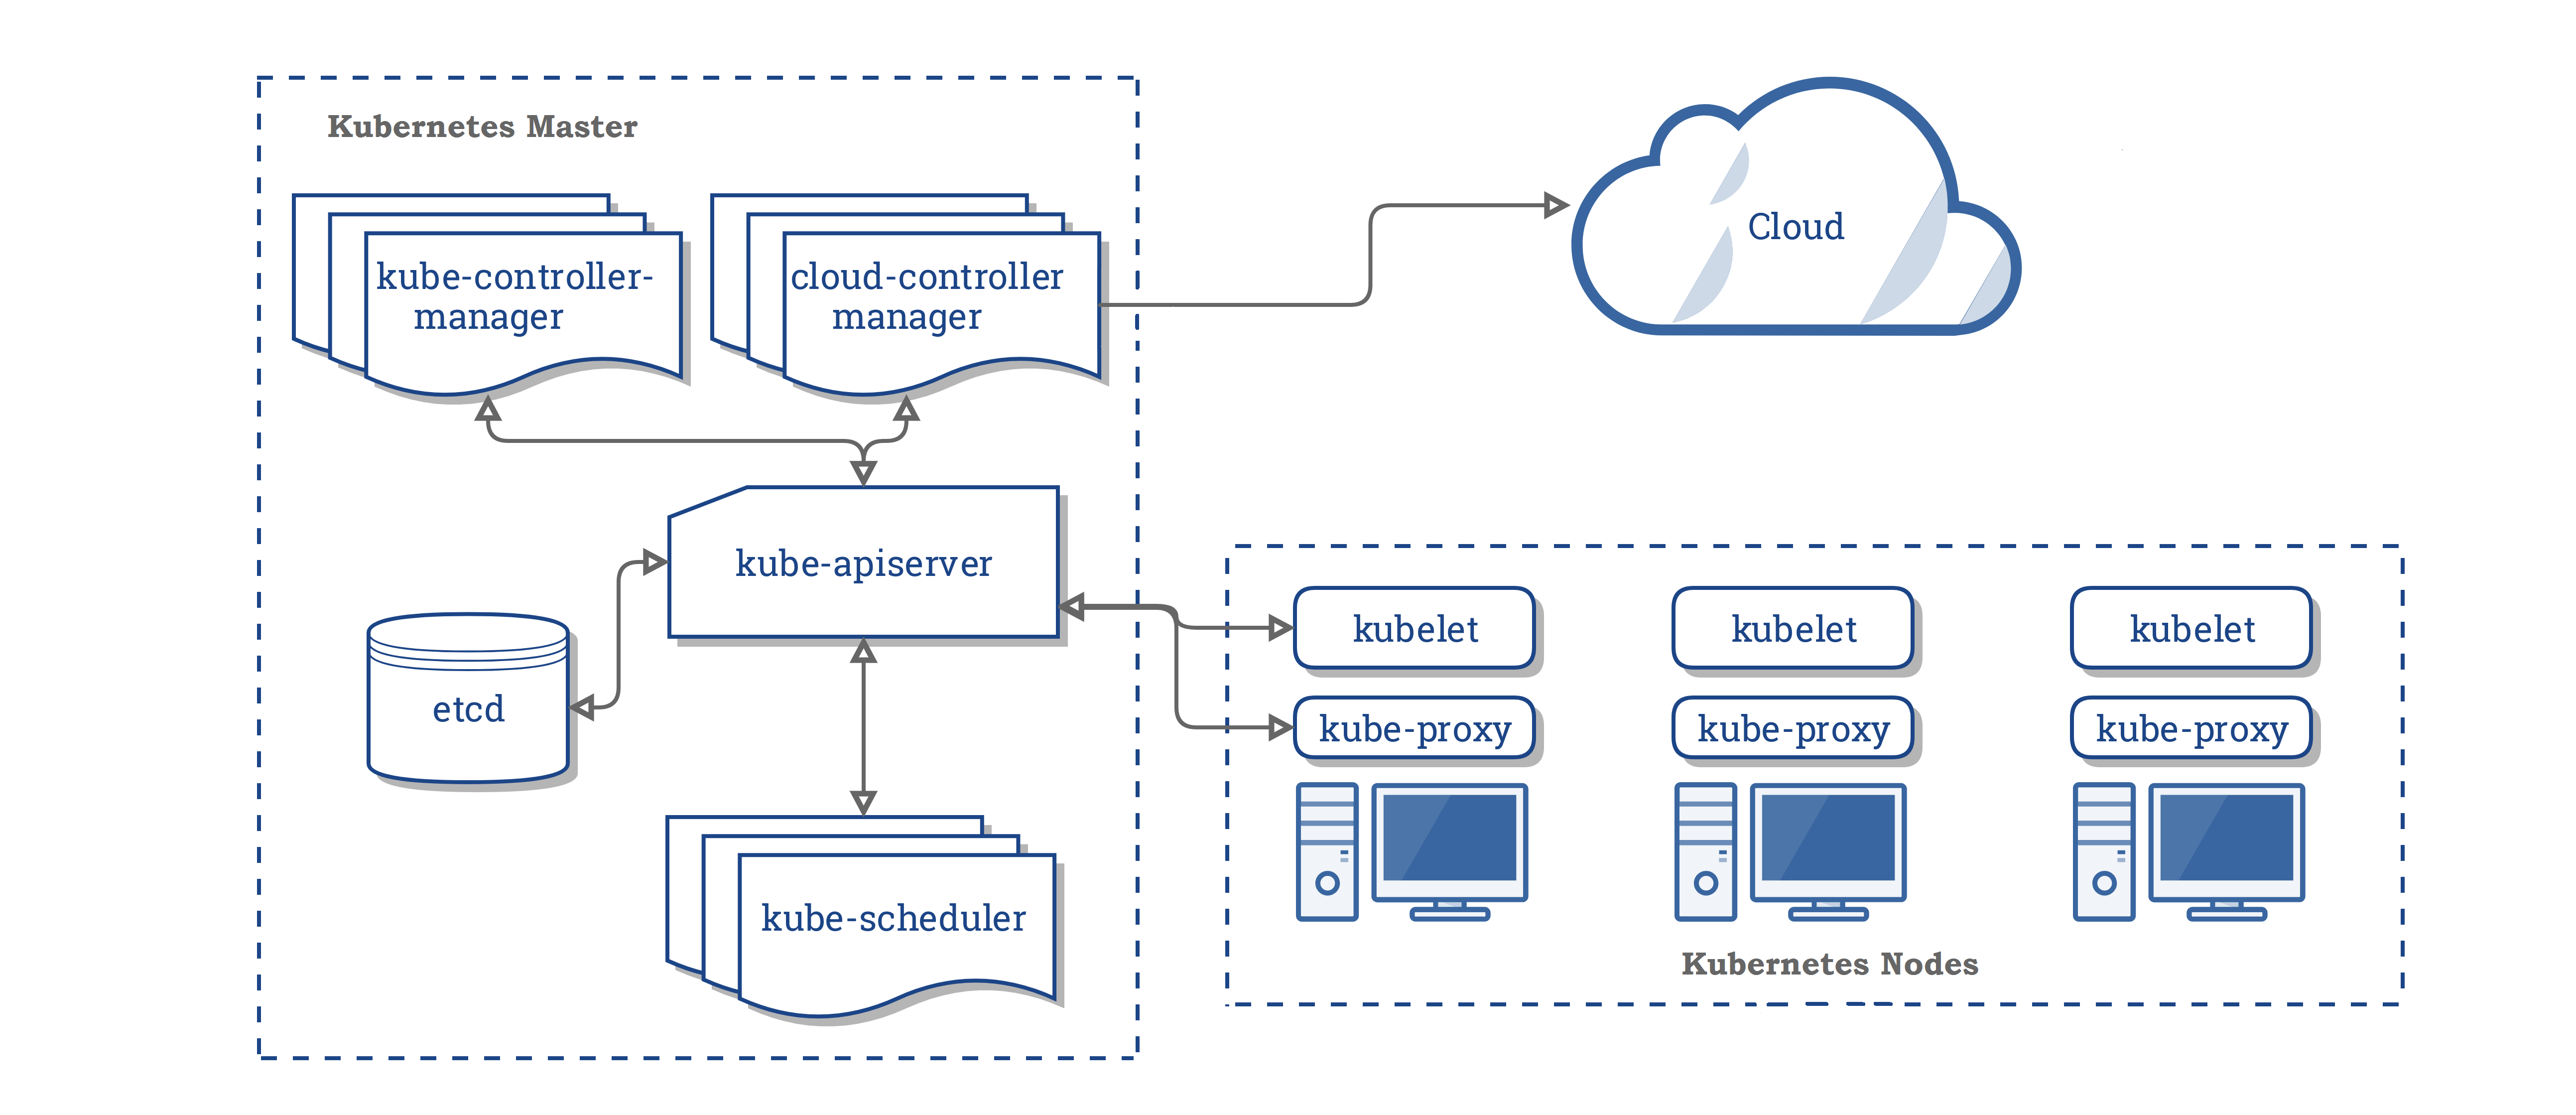 Components of Kubernetes